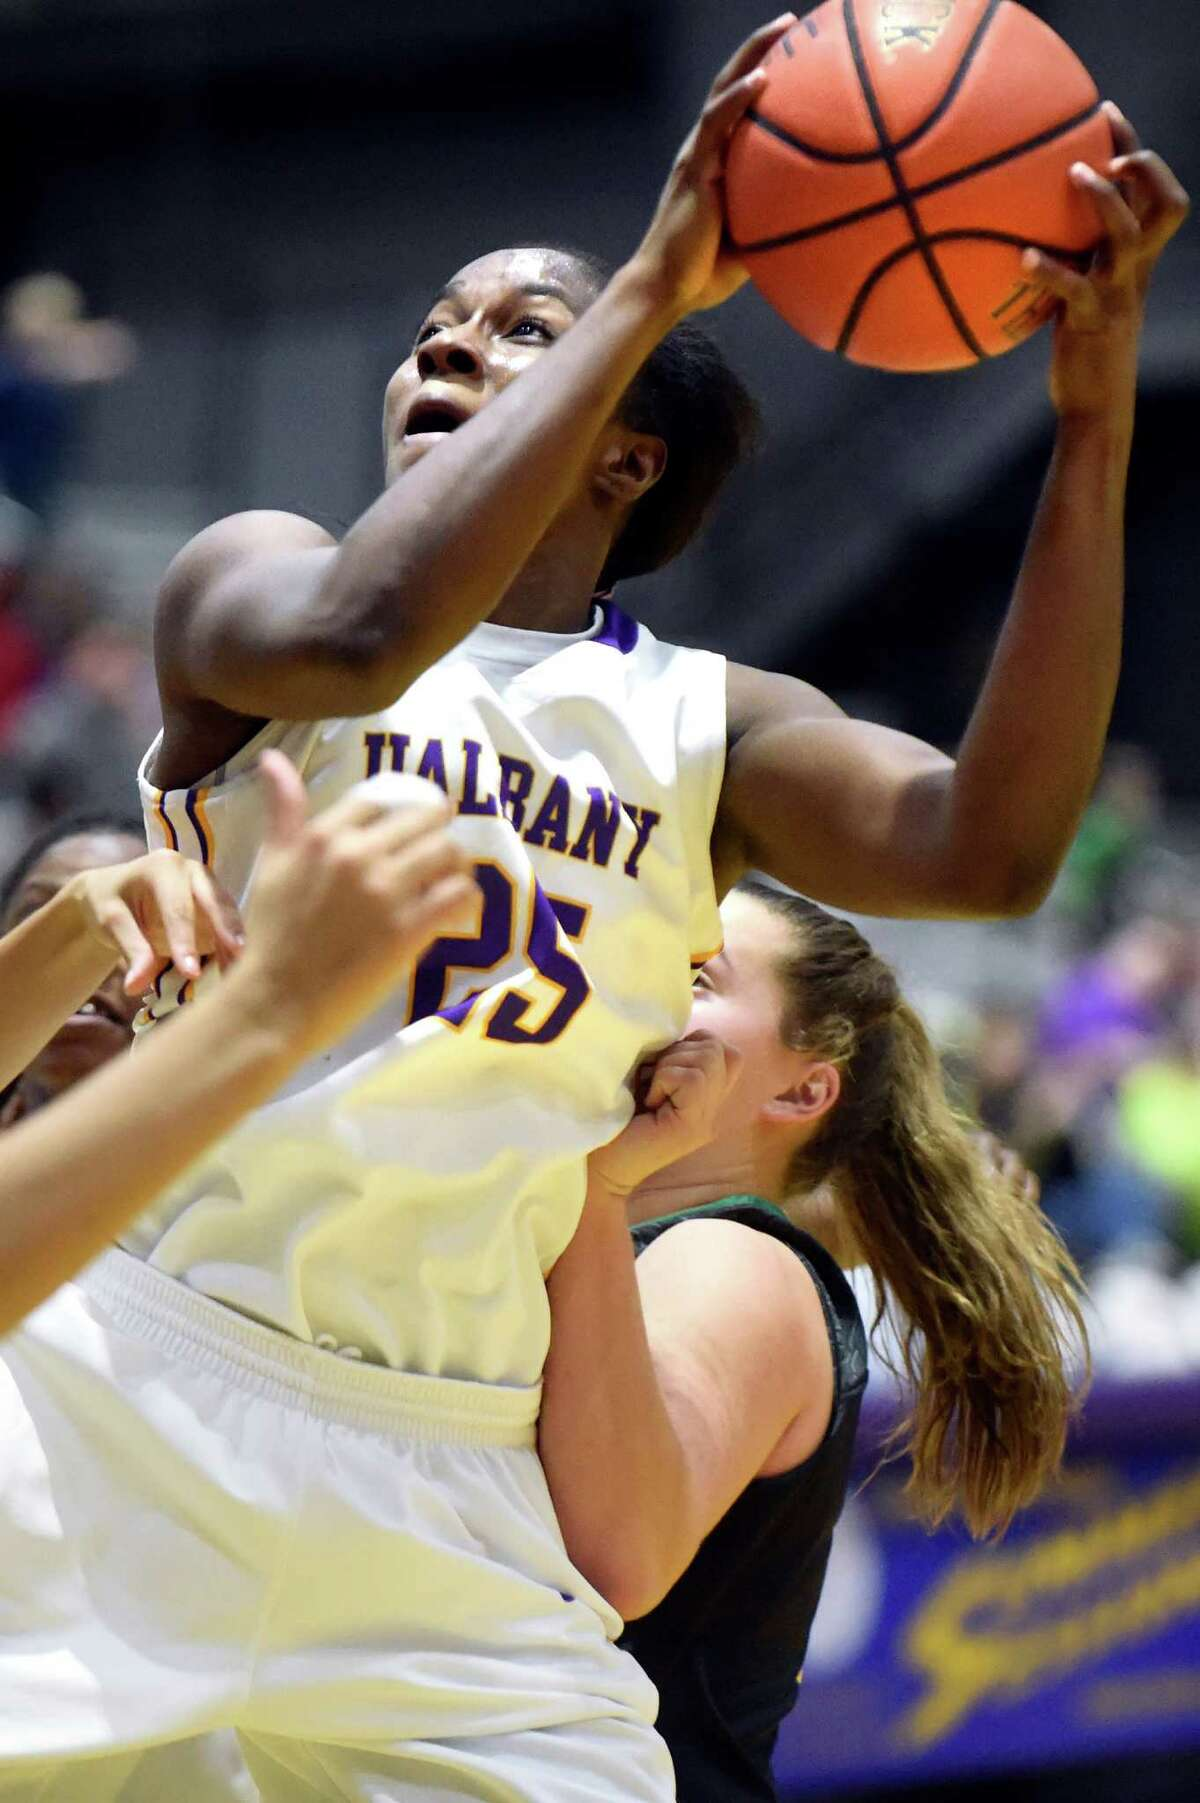 UAlbany's Shereesha Richards looks to the hoop during their basketball game against Vermont on Saturday, Jan. 9, 2016, at SEFCU Arena in Albany, N.Y. (Cindy Schultz / Times Union)